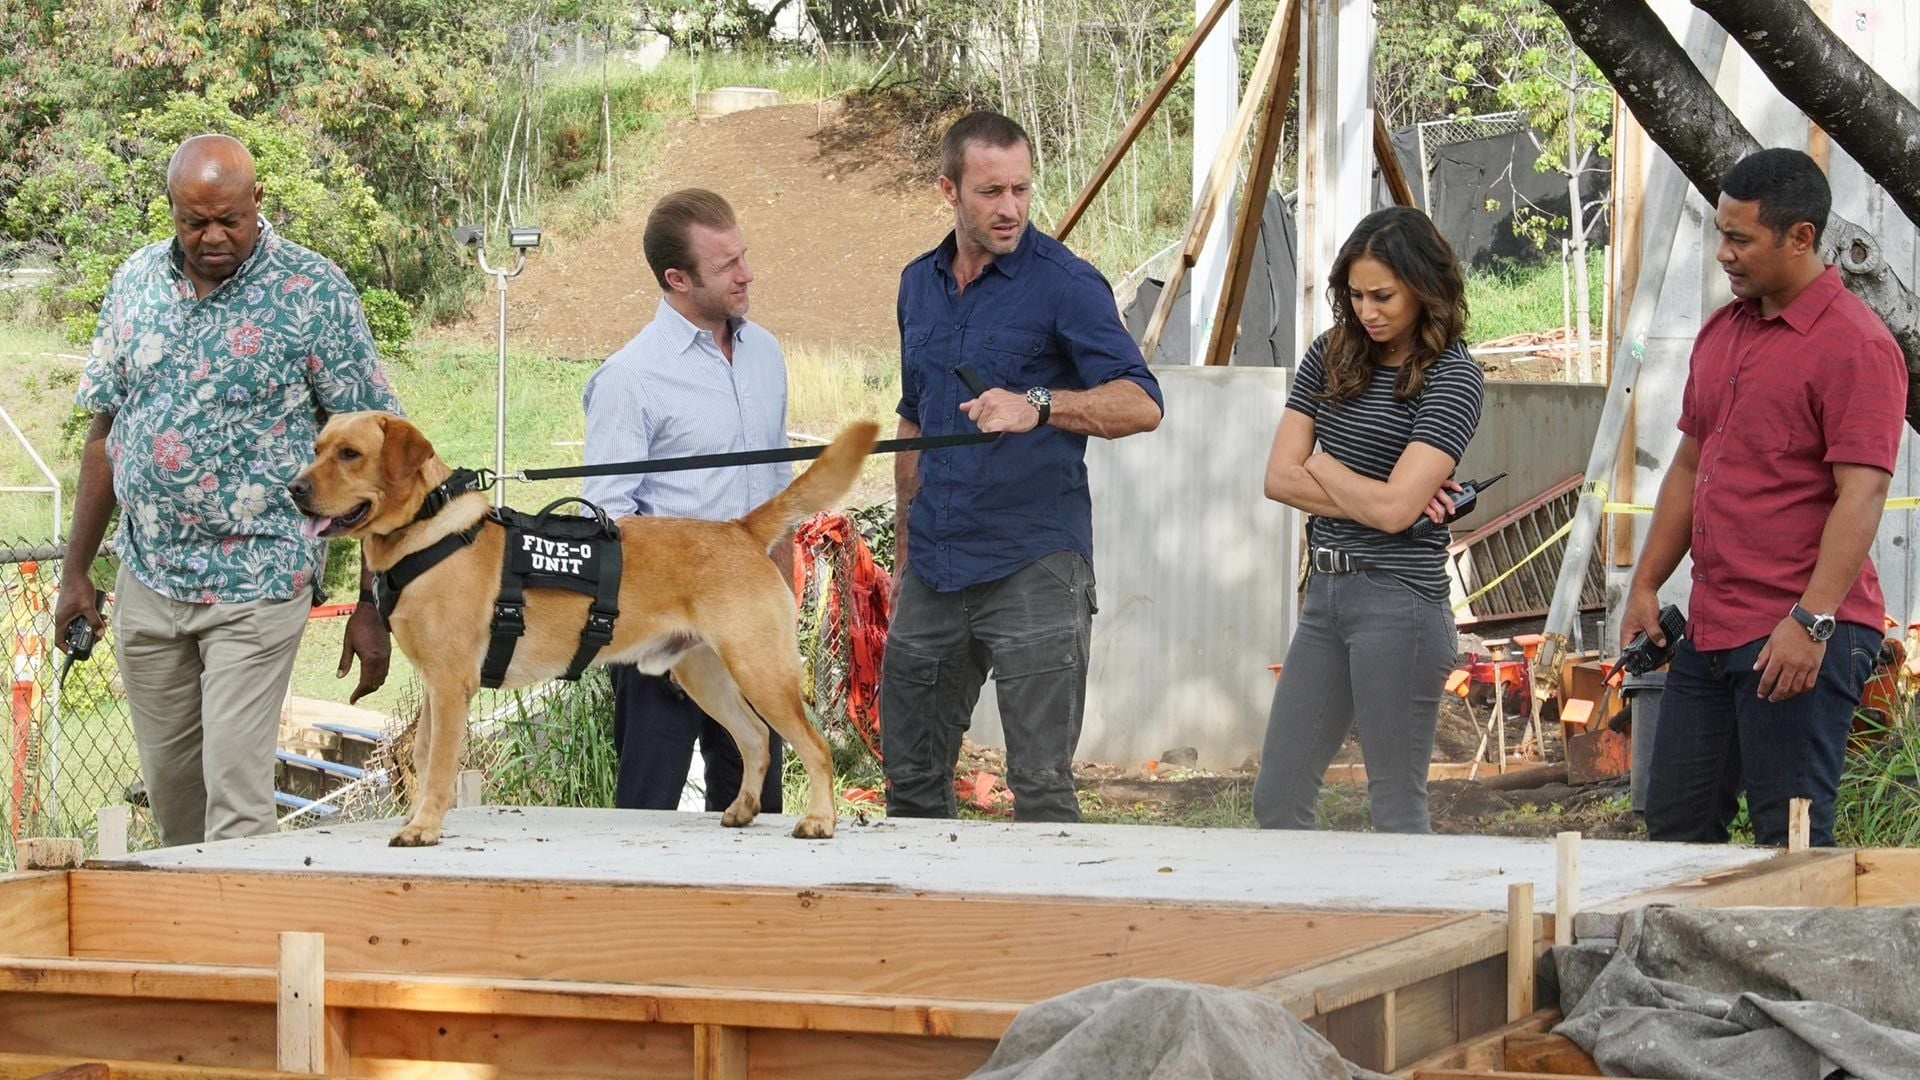 Hawaii Five-0 - Season 8 Episode 16 : O na hoku o ka lani ka i 'ike ia Pae' (Only the Stars of Heaven Know Where Pae Is)